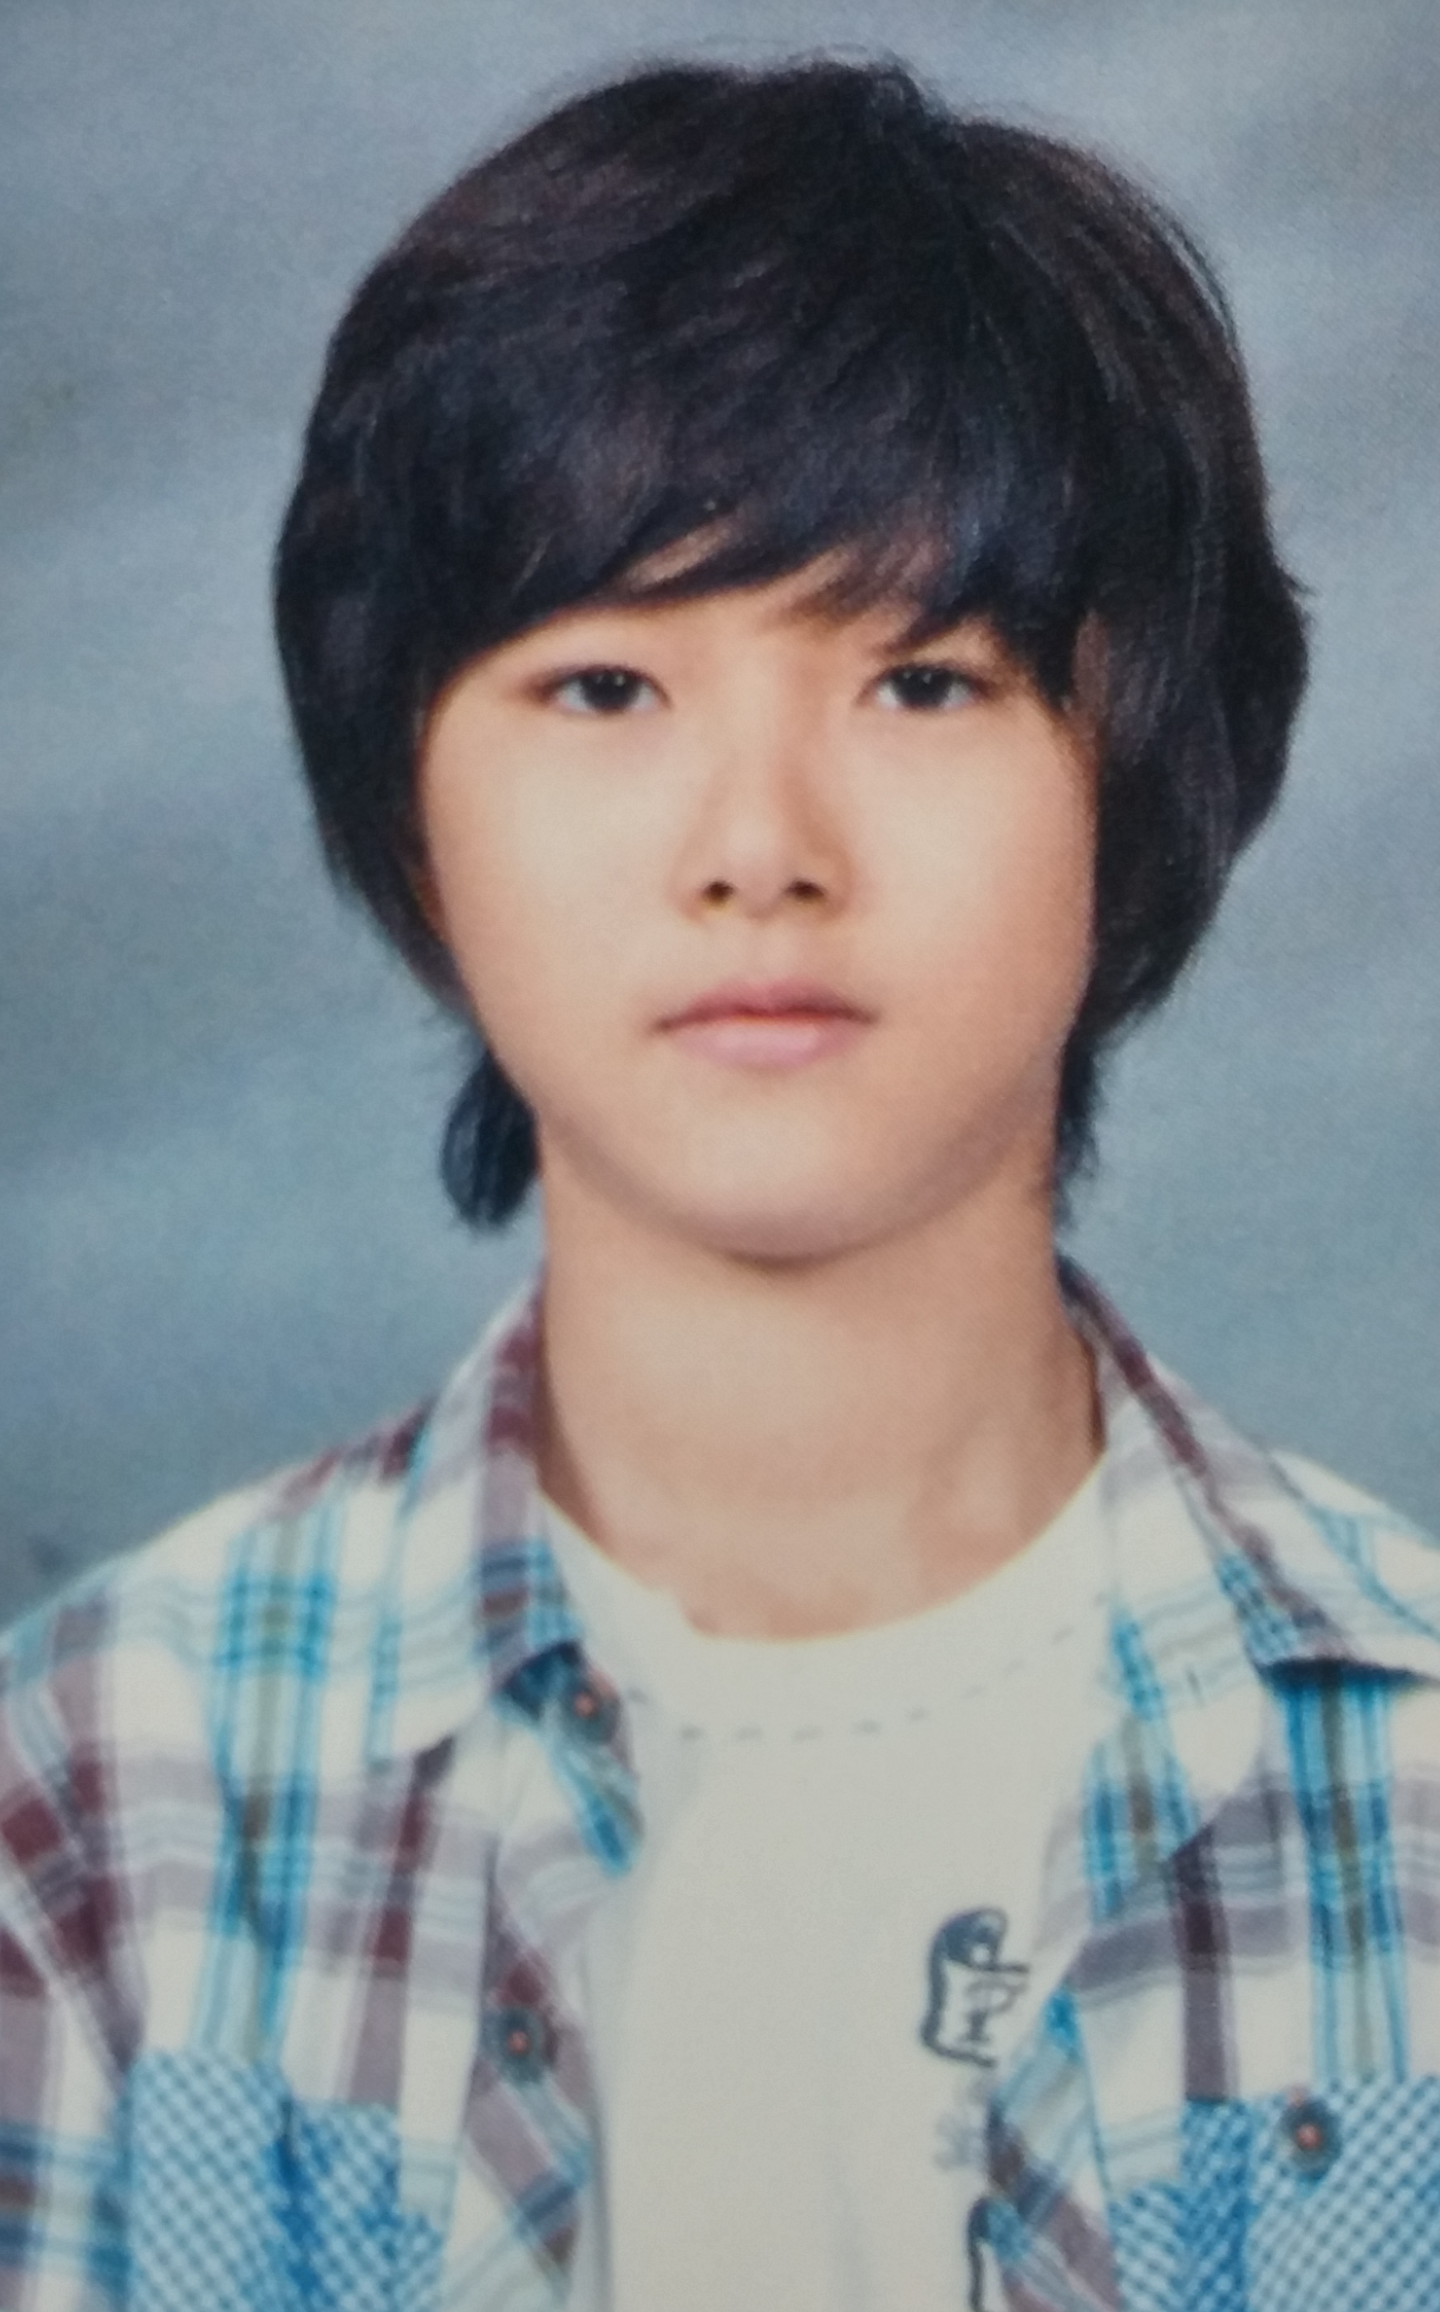 Seo jihoon past, seo jihoon young picture, seo jihoon before